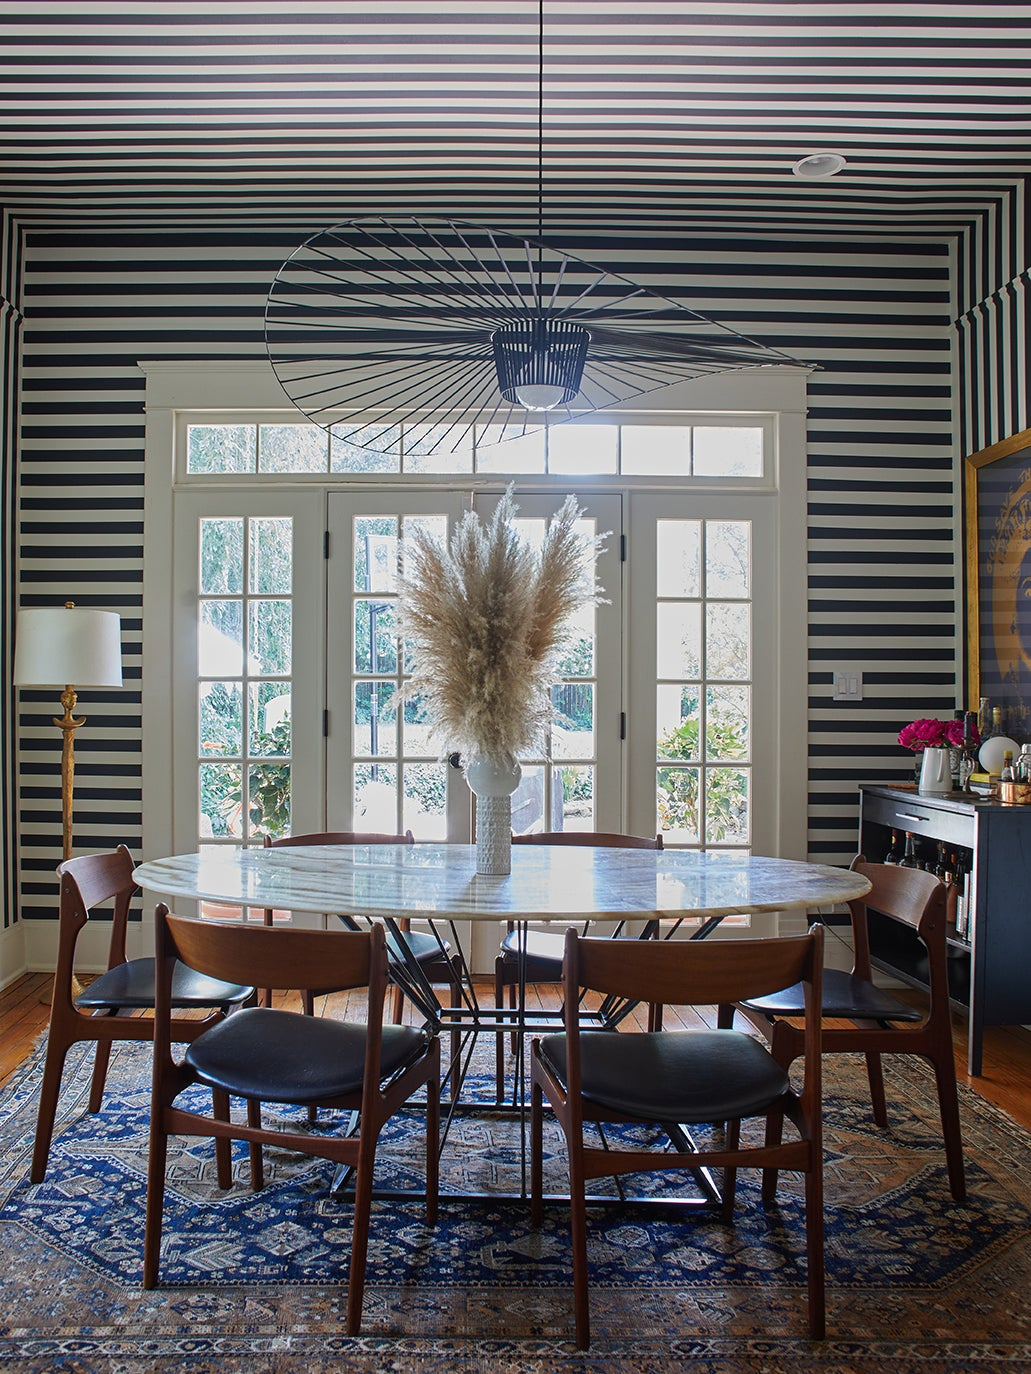 For Her Own Family Home, This Atlanta Designer Discovered Her Inner Earthy Maximalist